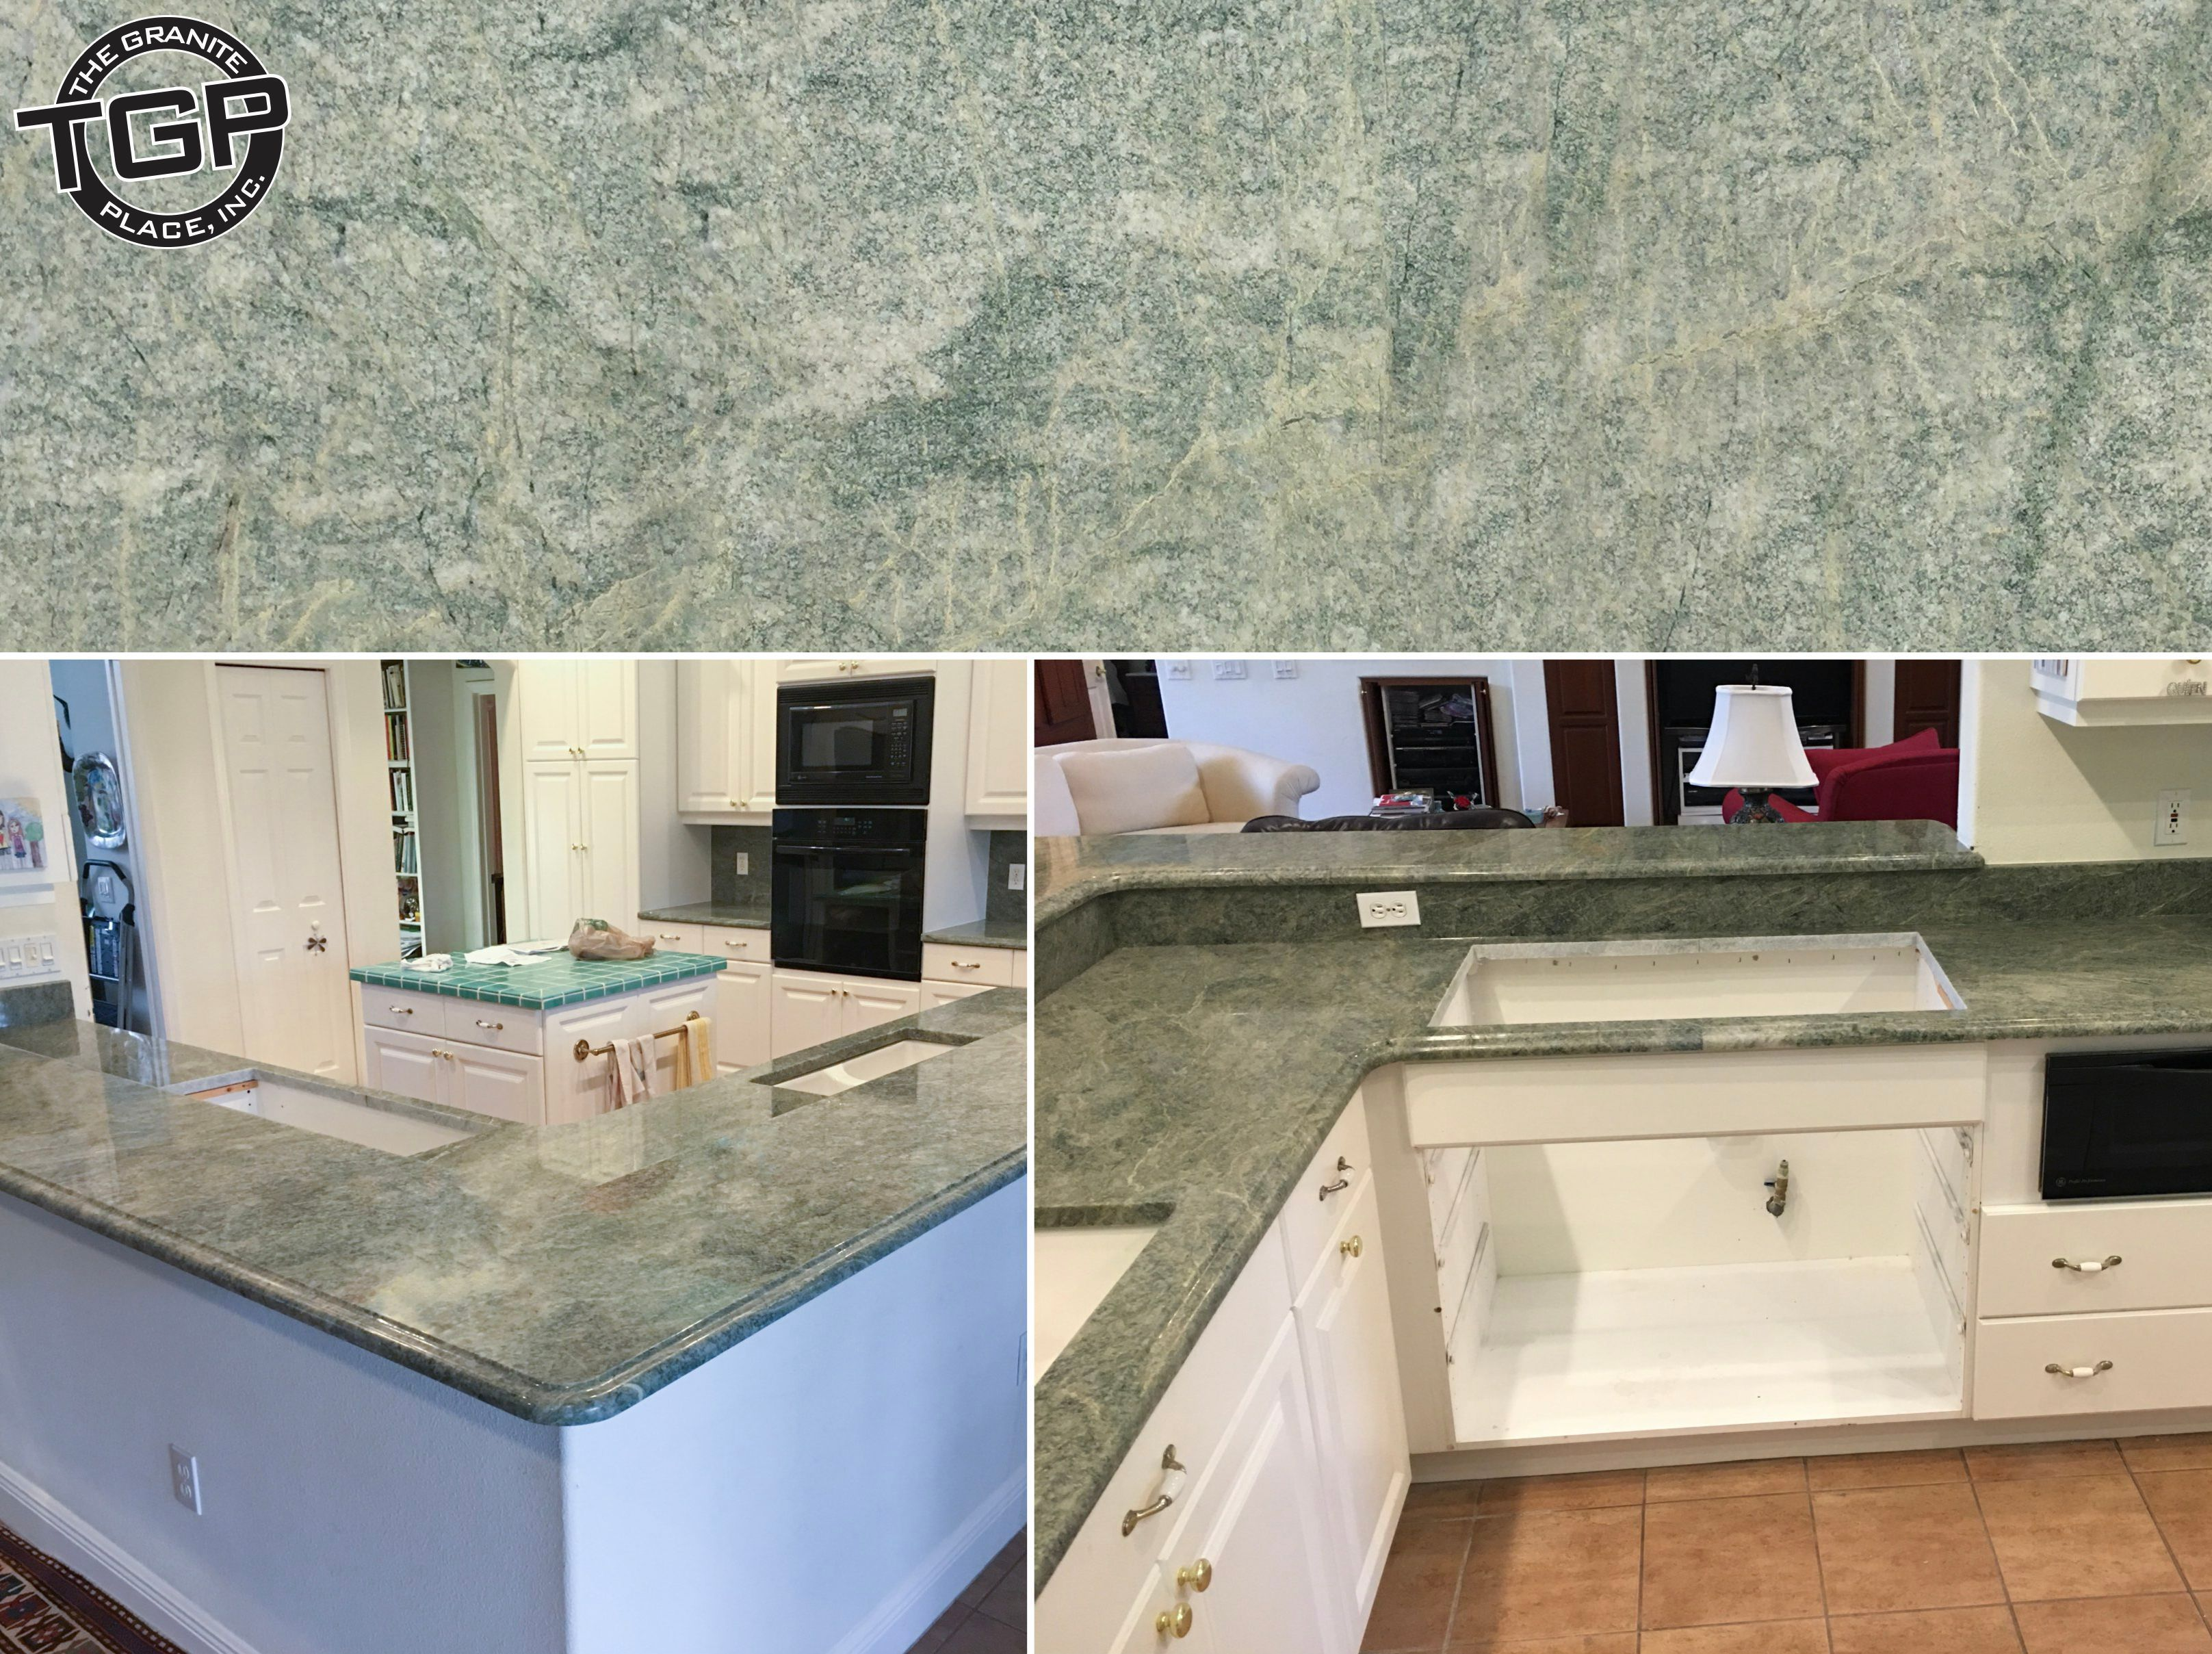 Costa Esmeralda Is A Very Beautiful Granite From Italy And Is A Durable Granite For Interior And Exterior Pr In 2020 Kitchen Remodel Home Construction Home Renovation